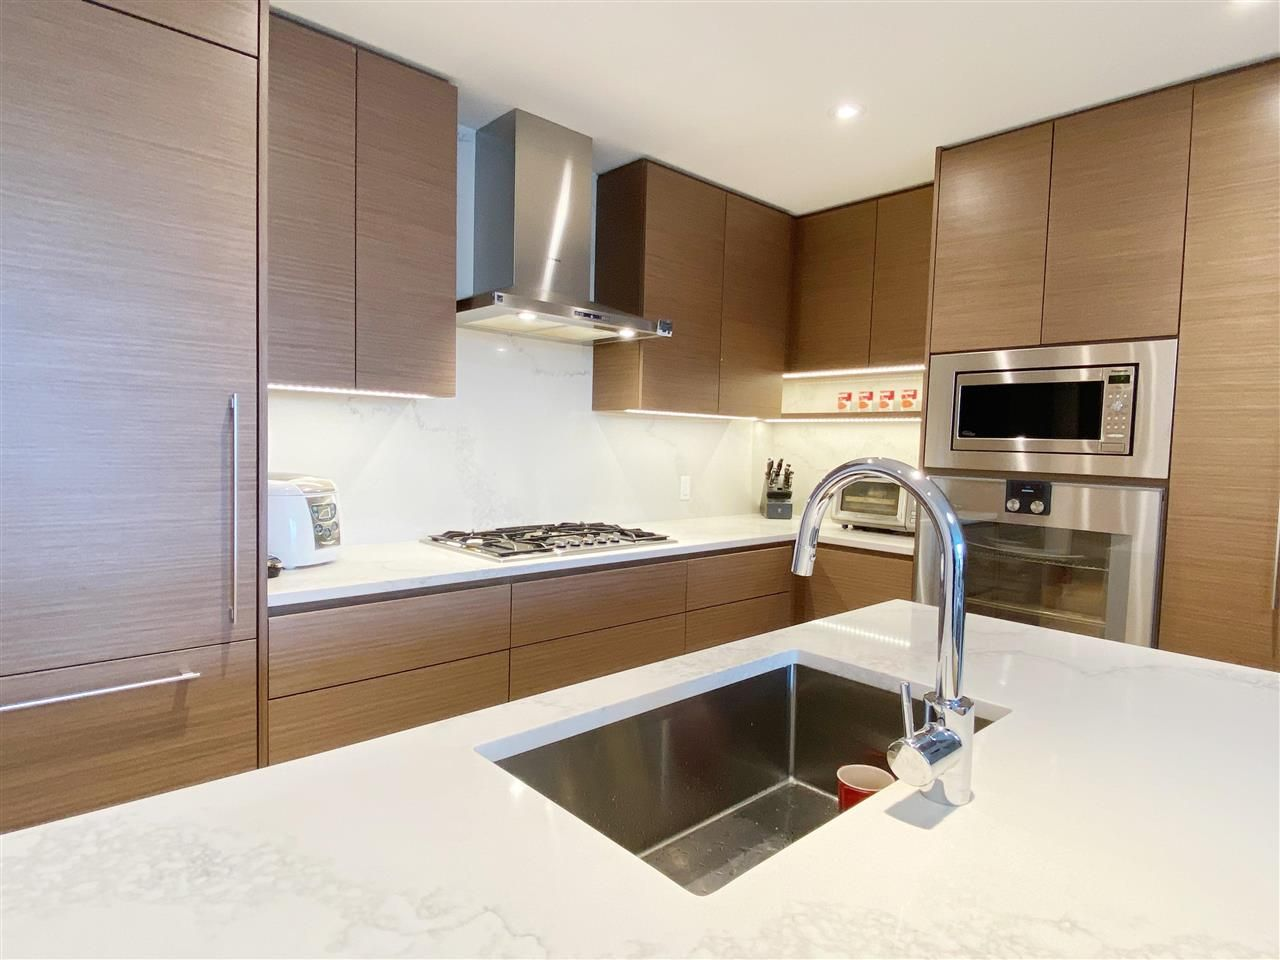 """Main Photo: 305 5693 ELIZABETH Street in Vancouver: South Cambie Condo for sale in """"THE PARKER"""" (Vancouver West)  : MLS®# R2575782"""